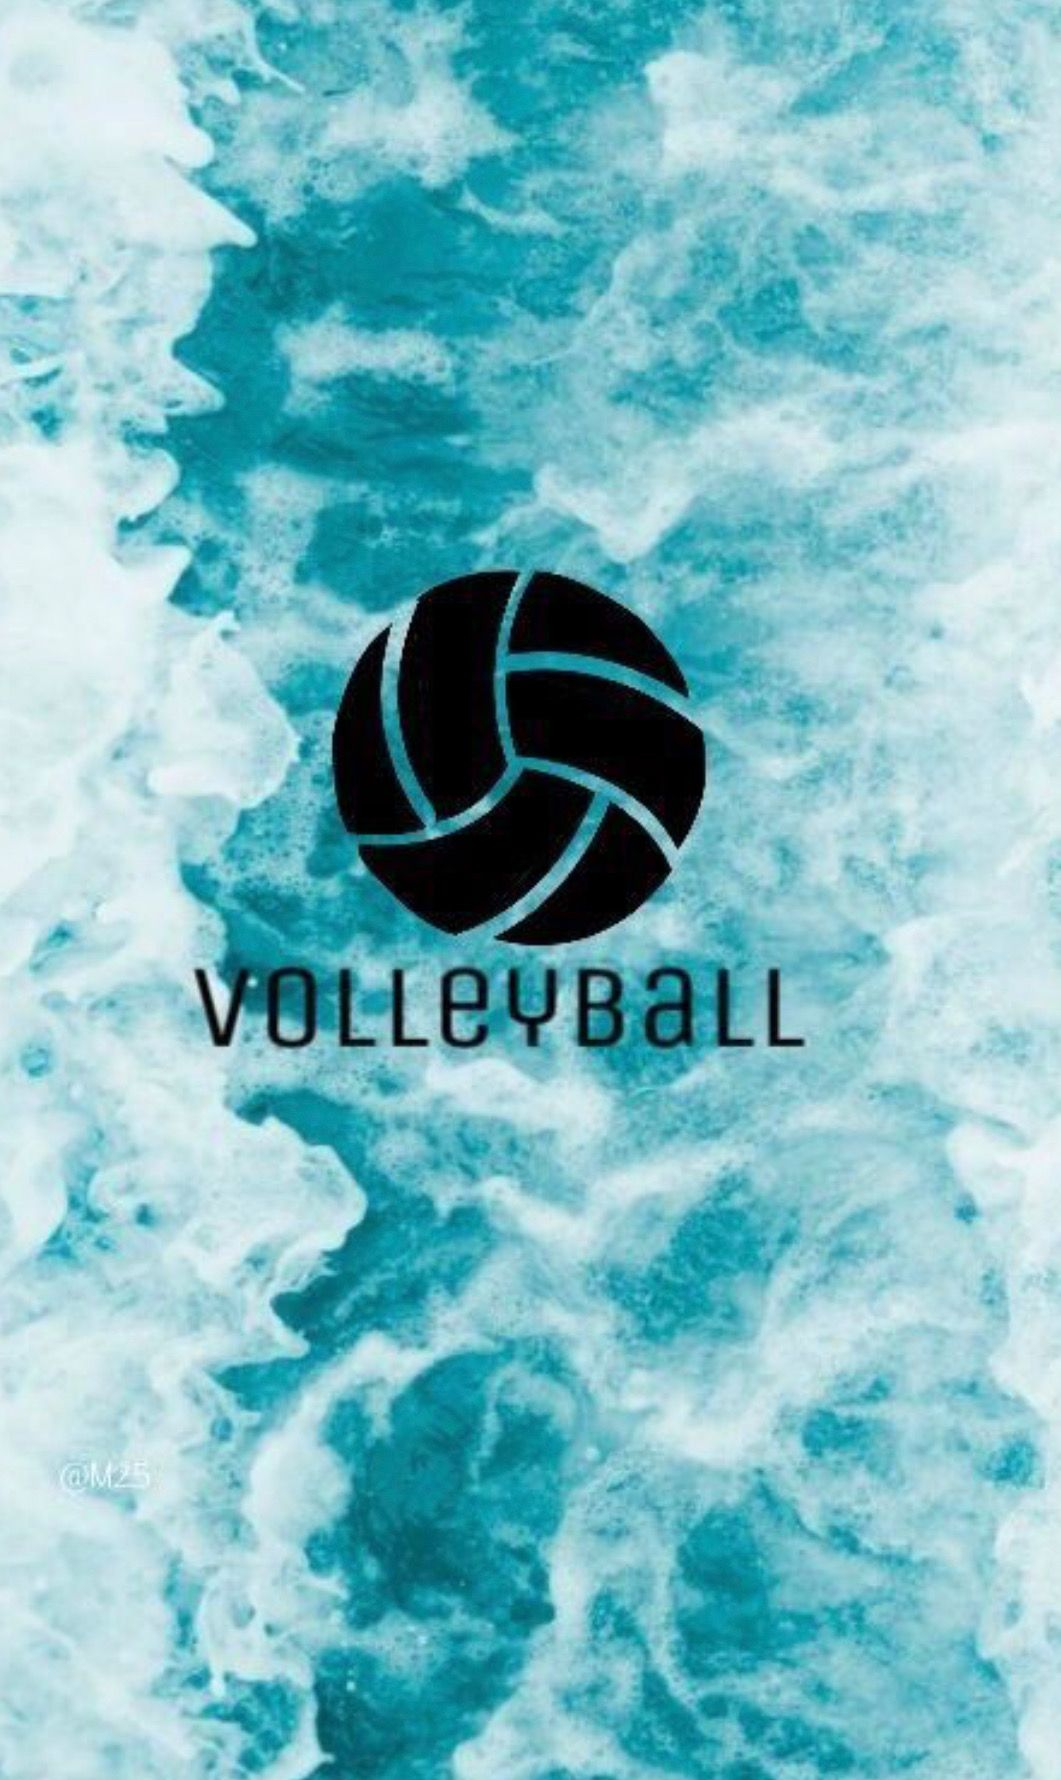 Pin By Loveemma On Background Volleyball Wallpaper Volleyball Backgrounds Volleyball Drawing